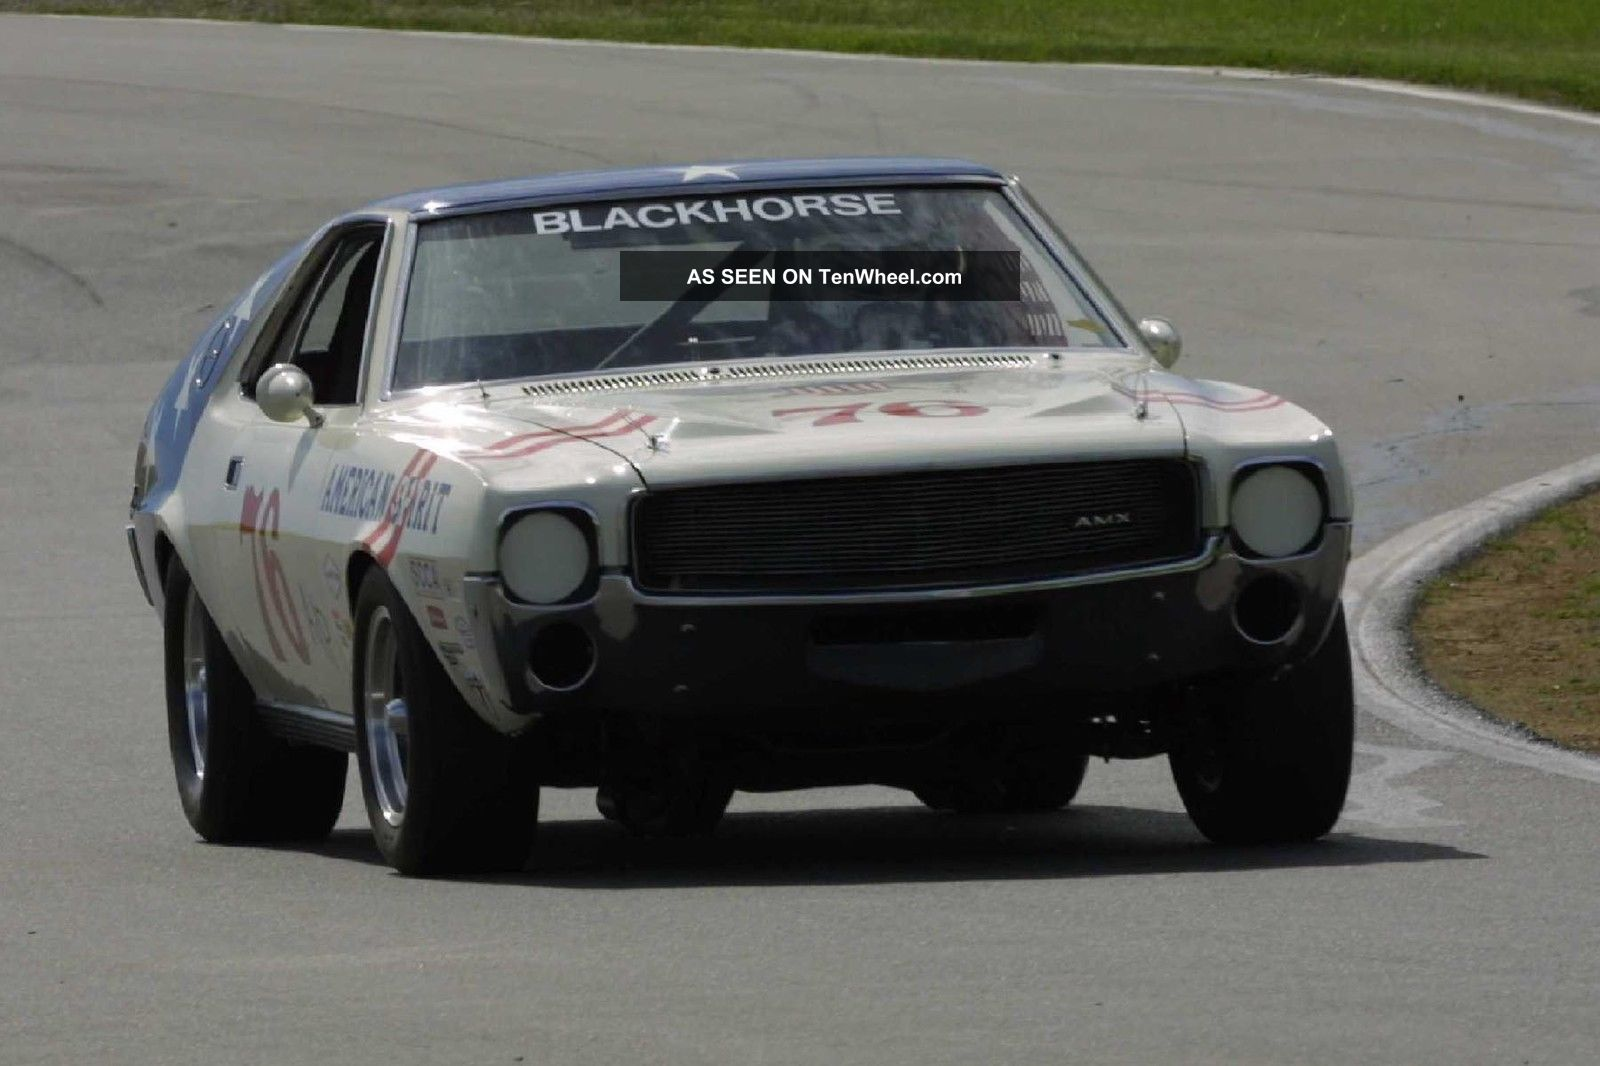 1968 Amx Race Car - Owner AMC photo